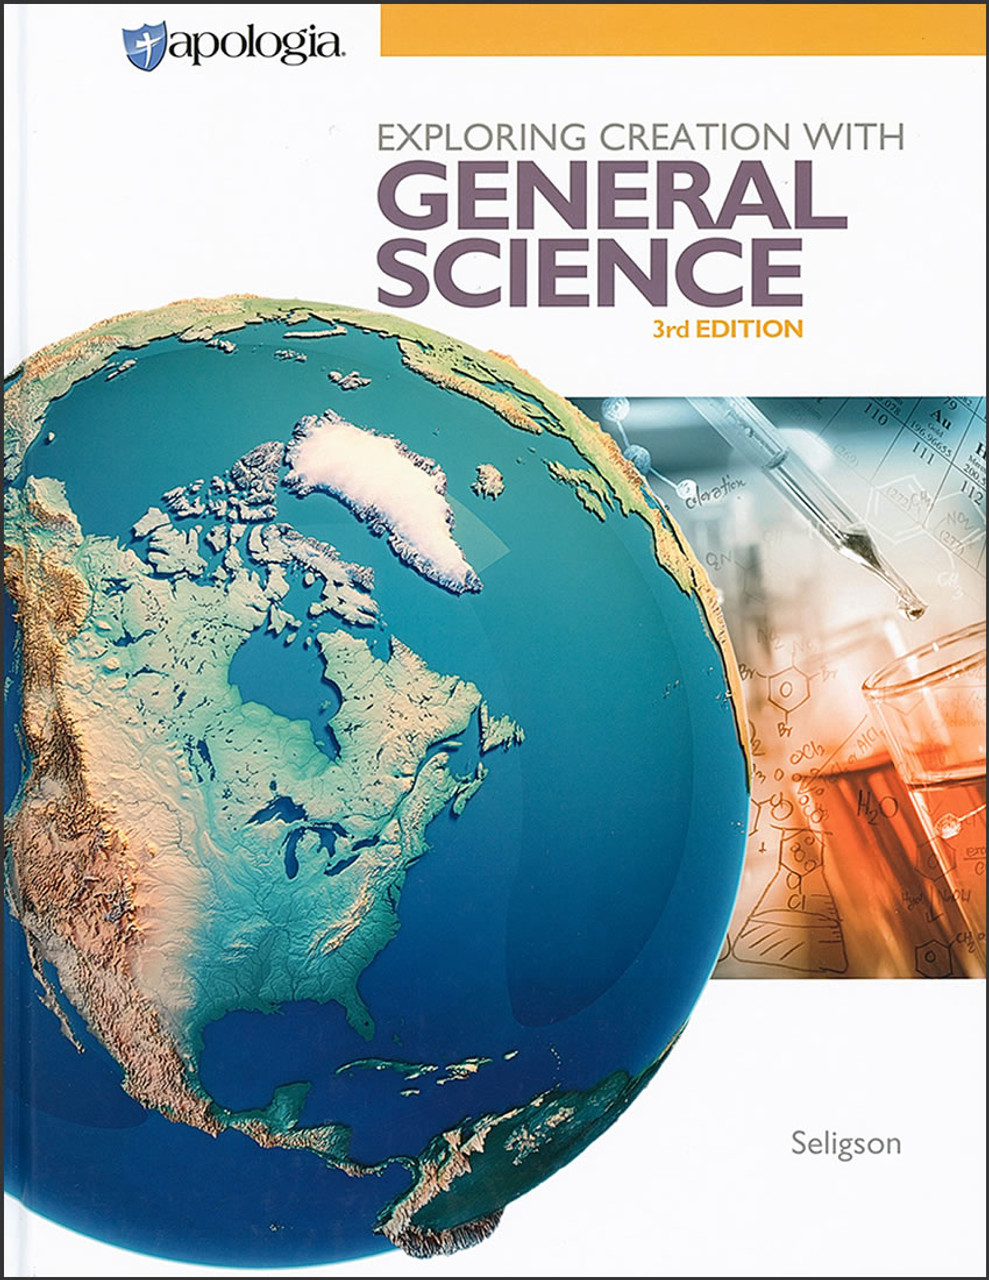 Exploring Creation with General Science, 3rd edition